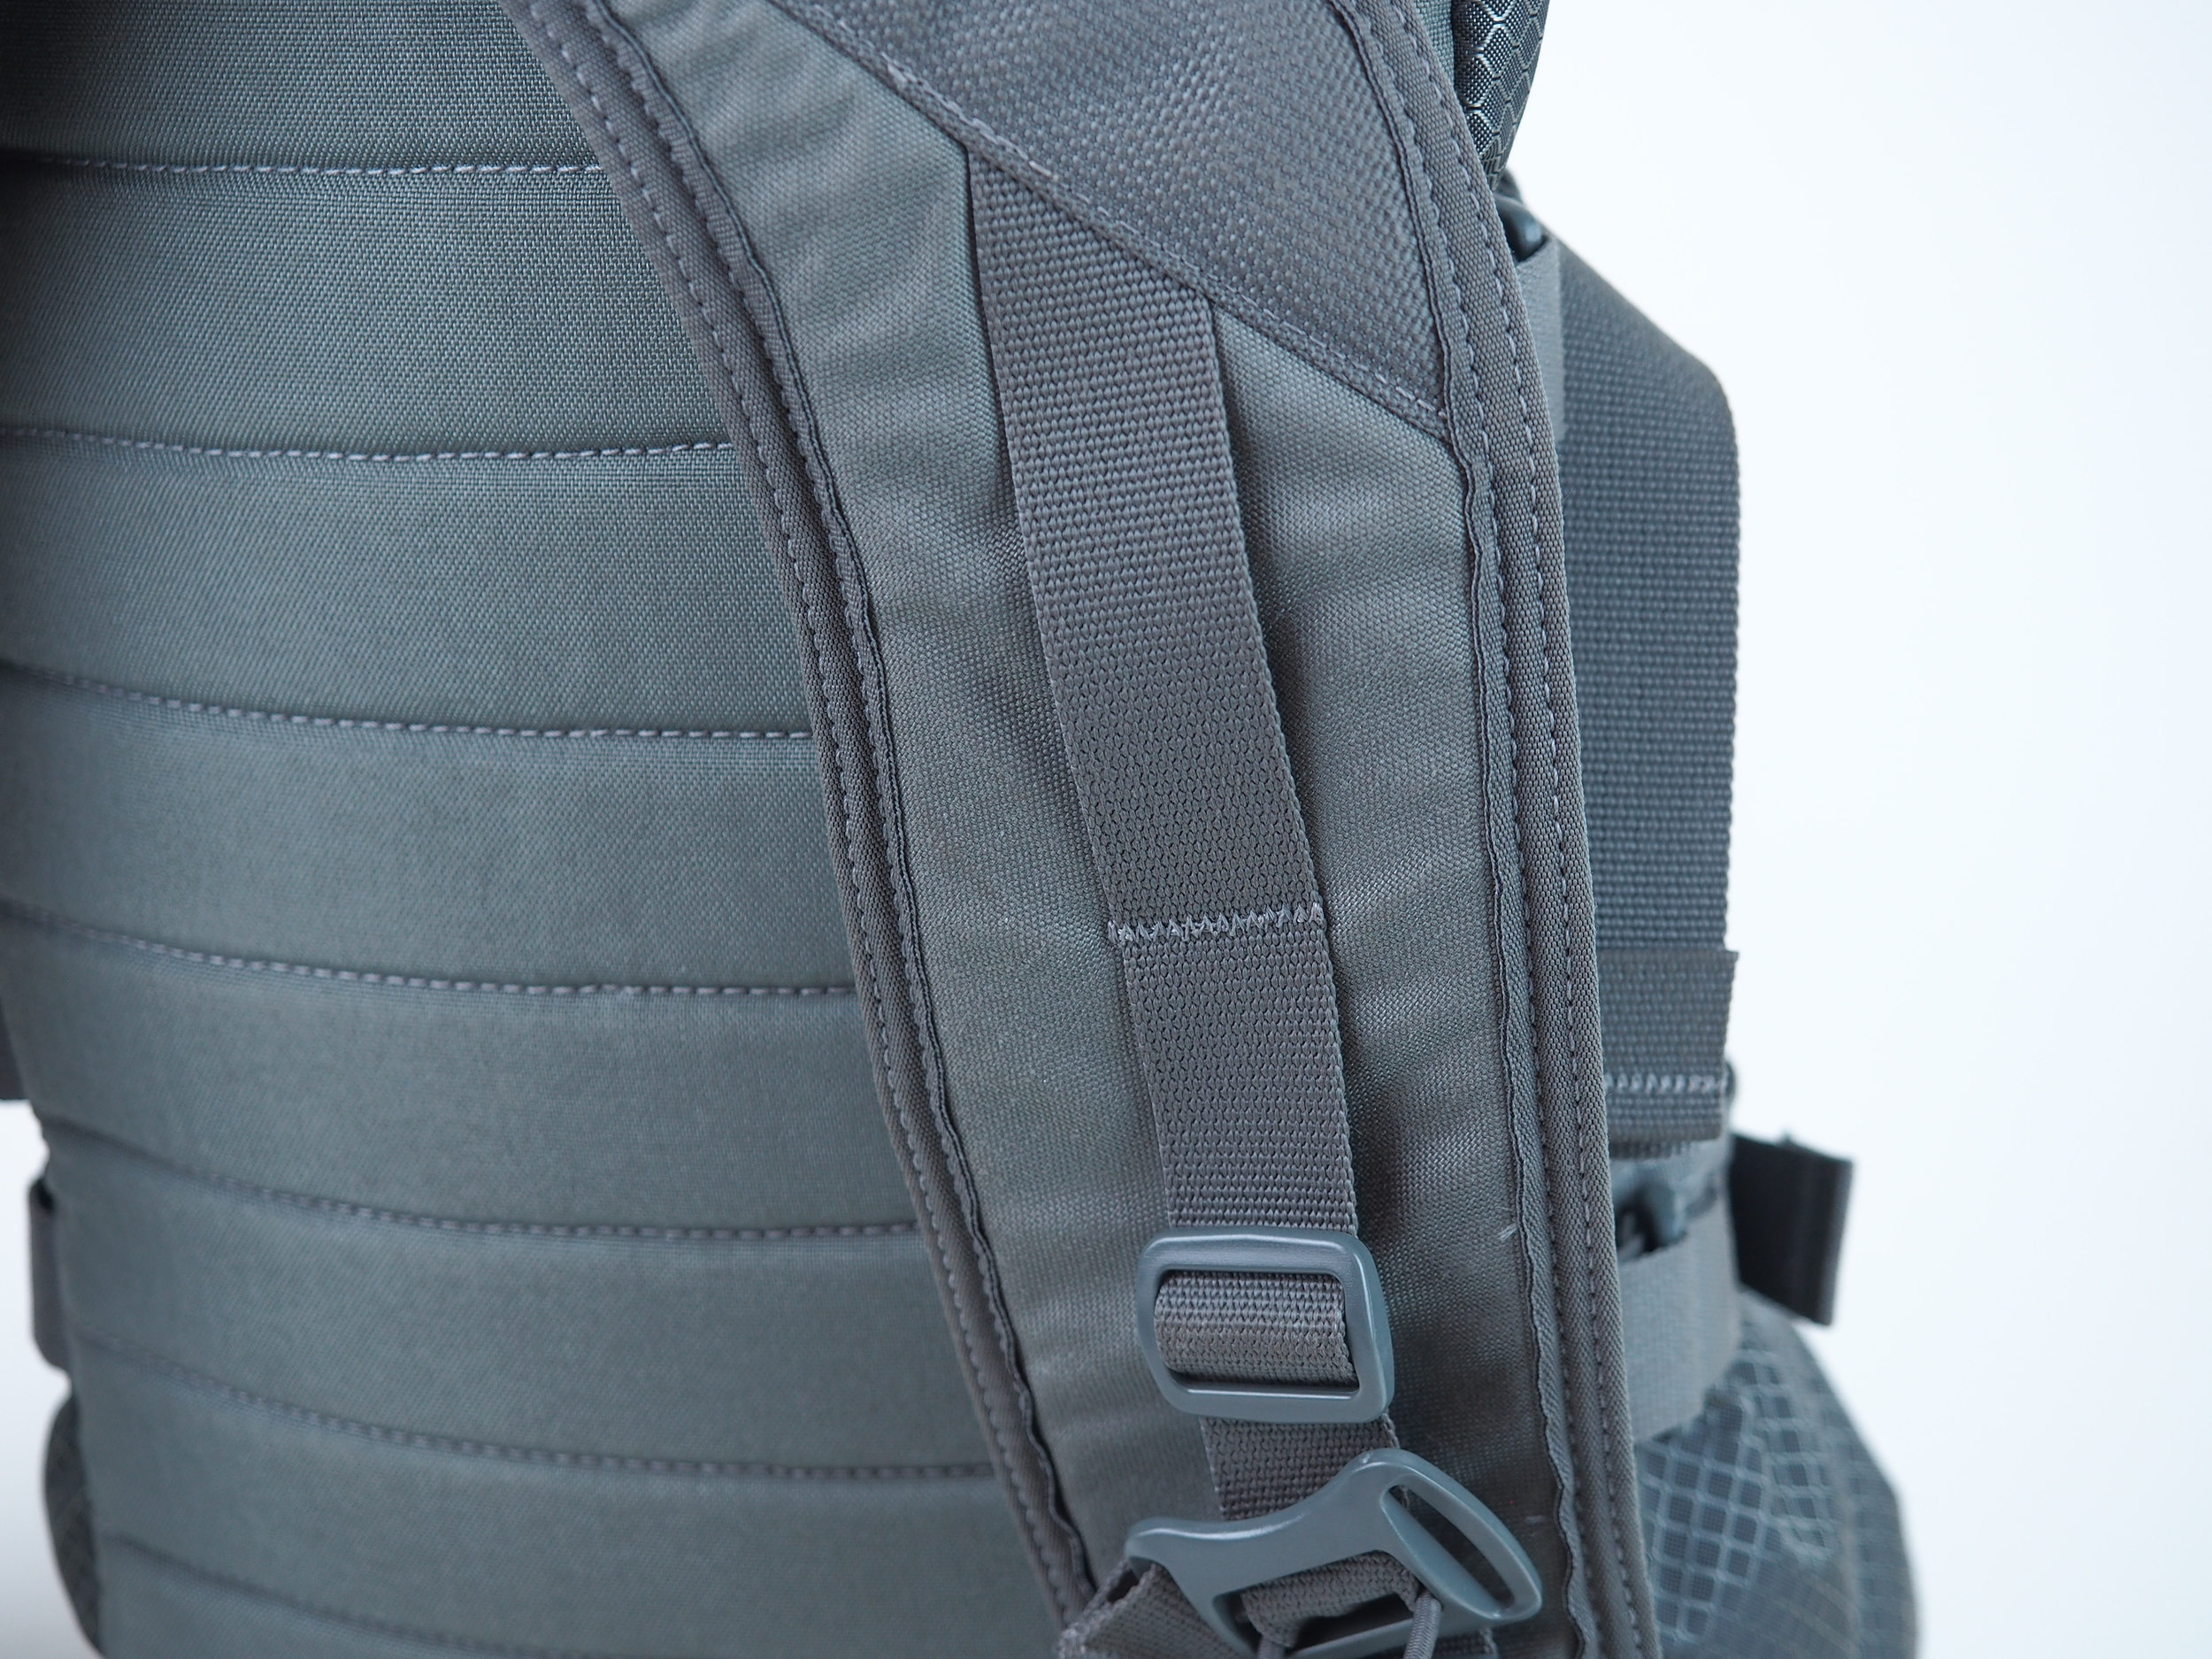 The shoulder harness is great. Wide straps help spread the weight across a larger area.